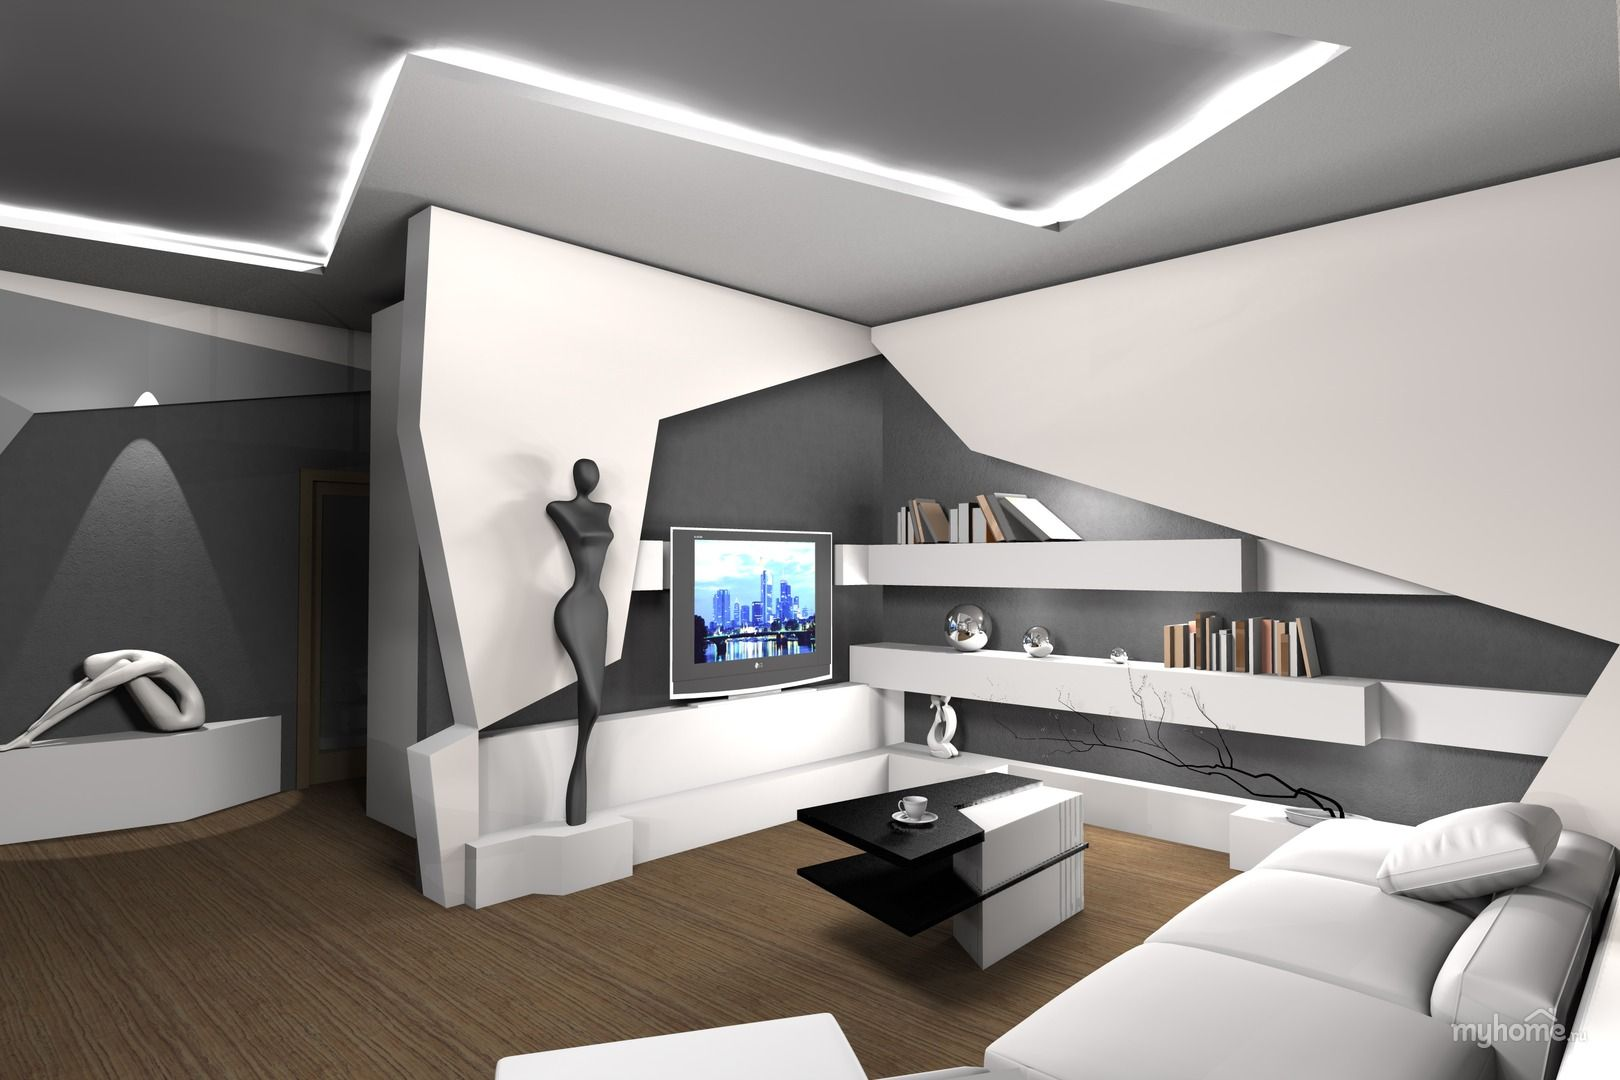 Futurism In The Hotel Interior Is A Modern Apartment With Wide Range Of Home Liances It S Rigorous Background And Bright Color Accents